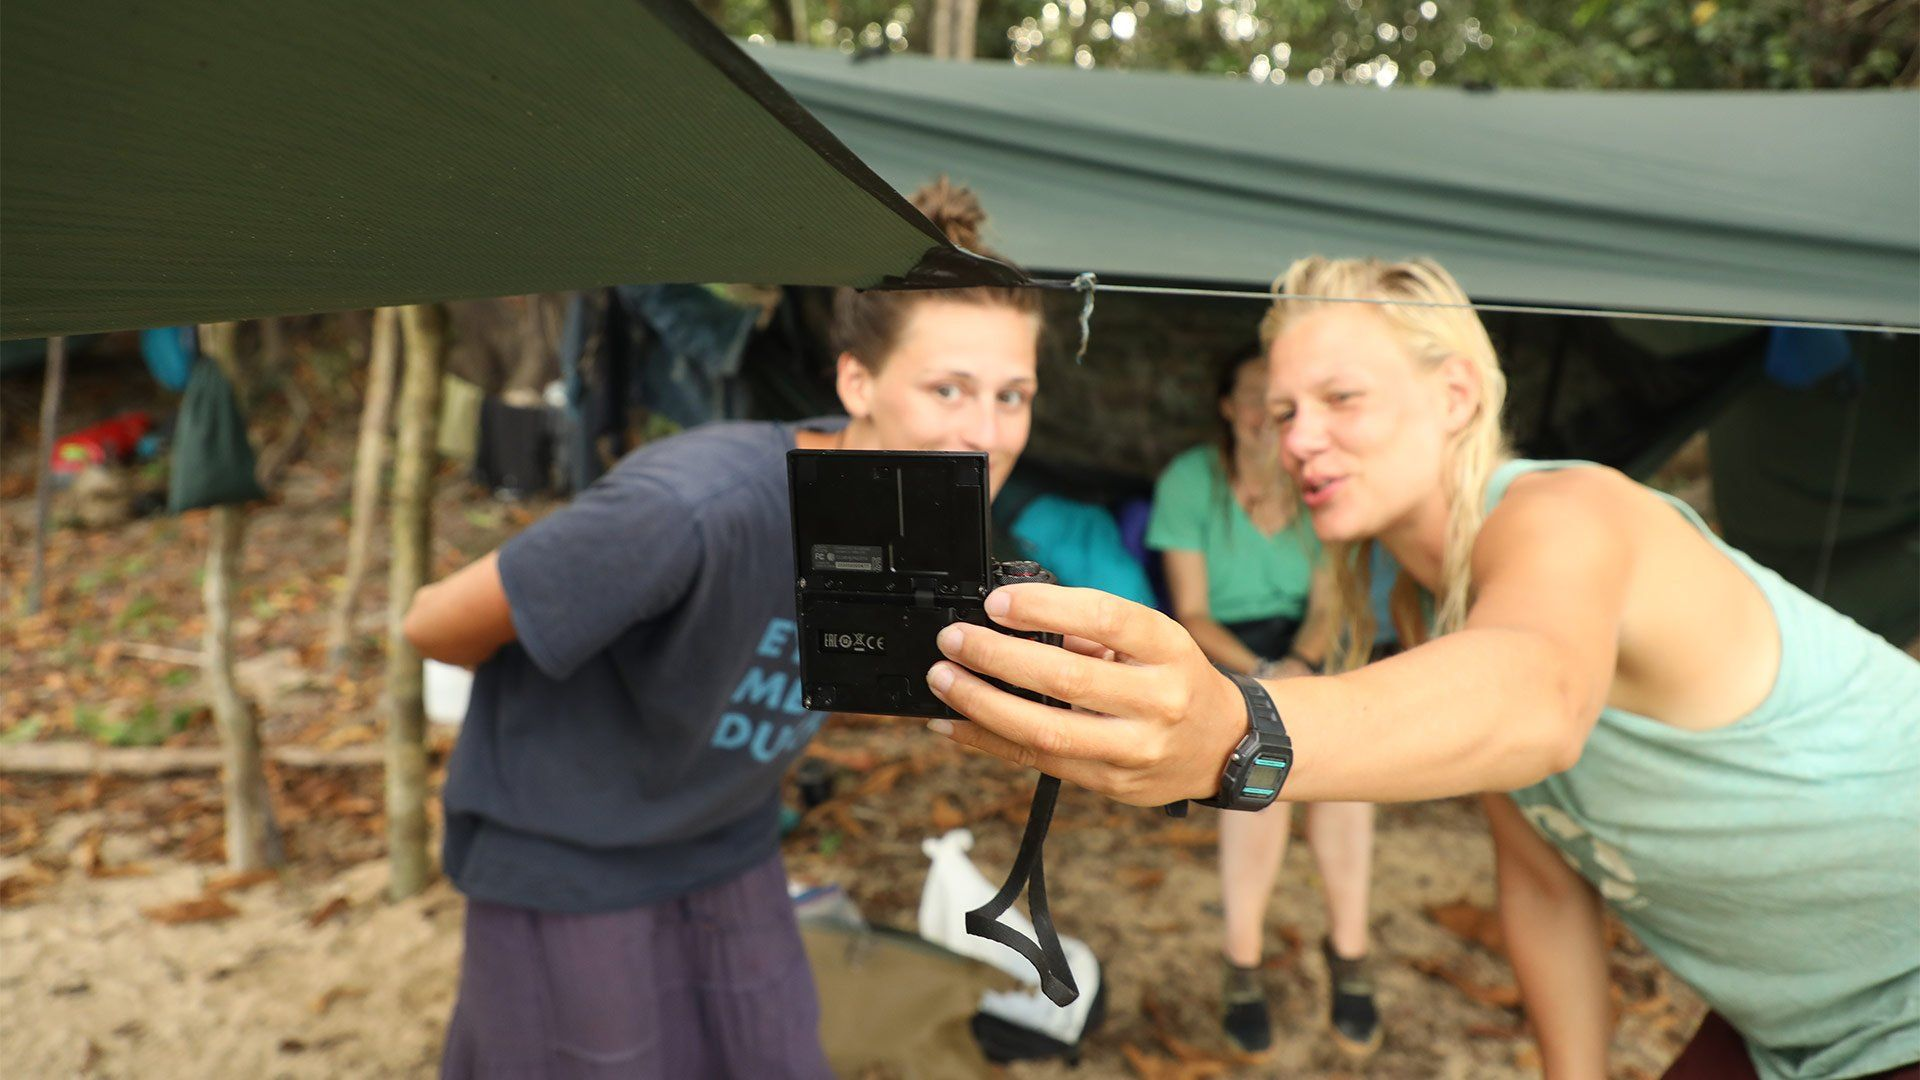 Laura and Ness Knight use a Canon PowerShot G7 X Mark II to film themselves in front of a tent in the jungle, inside which Pip Stewart is sitting.